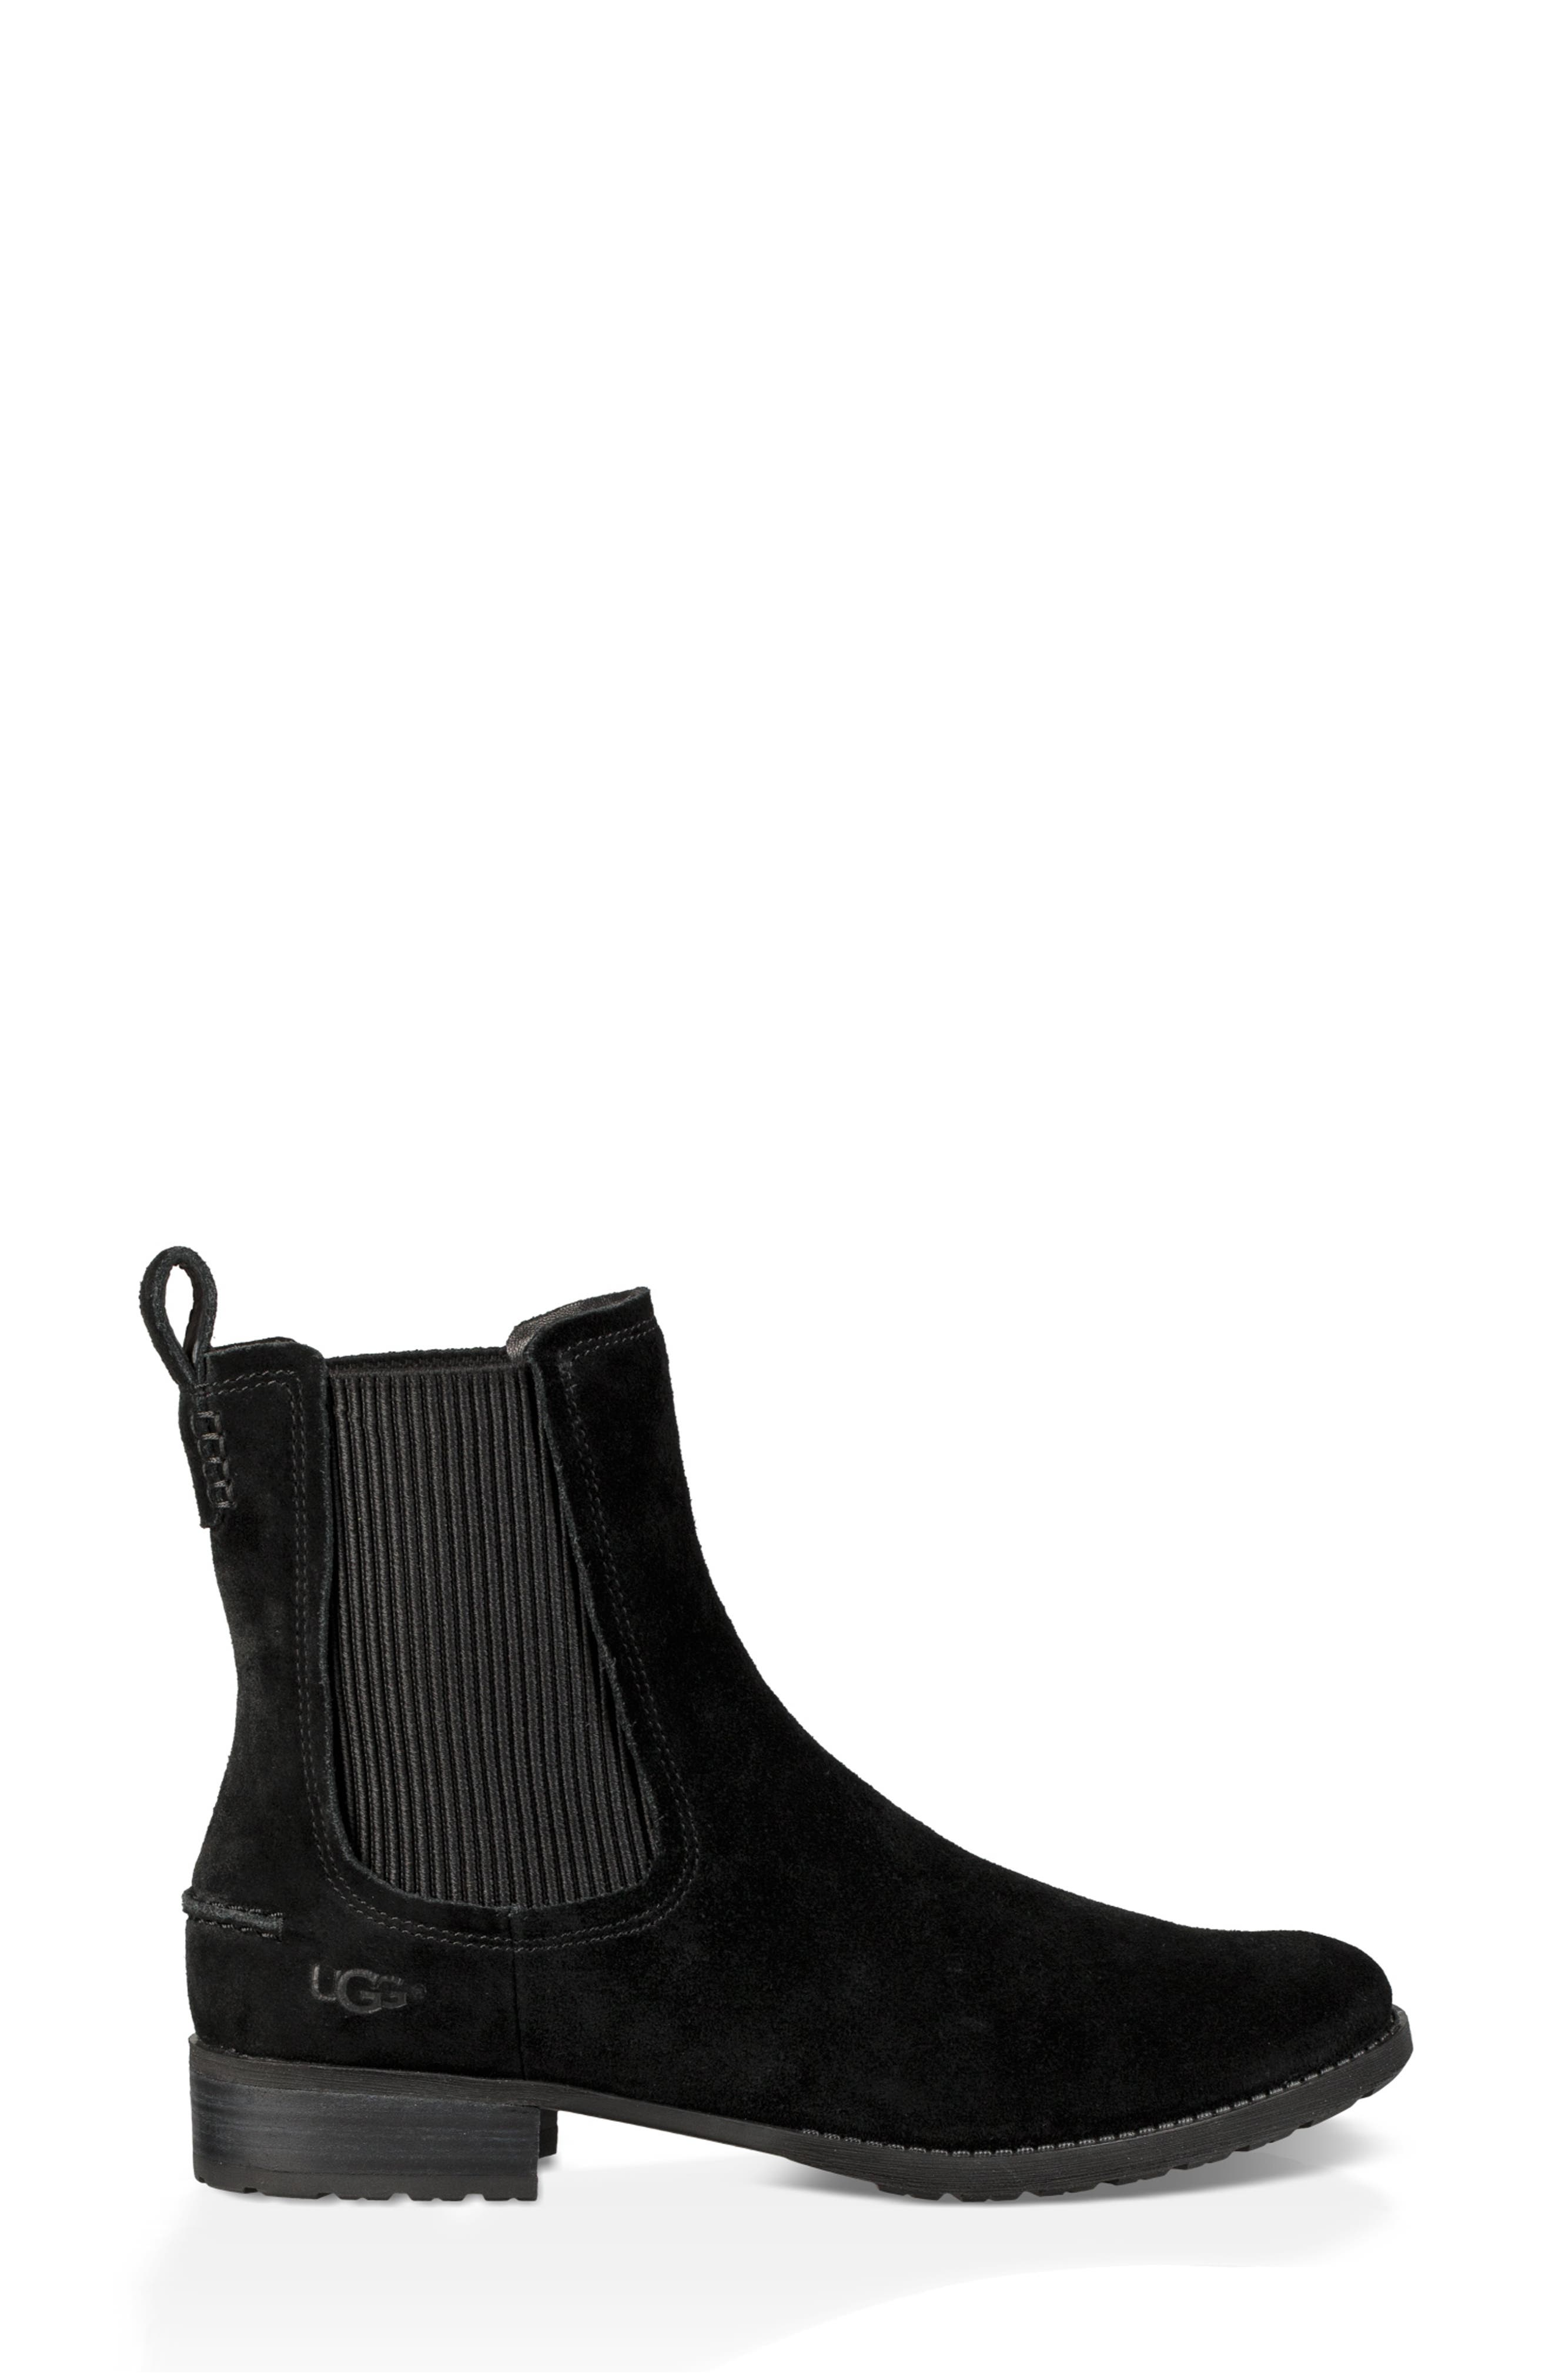 Hillhurst Chelsea Boot,                             Alternate thumbnail 3, color,                             BLACK SUEDE